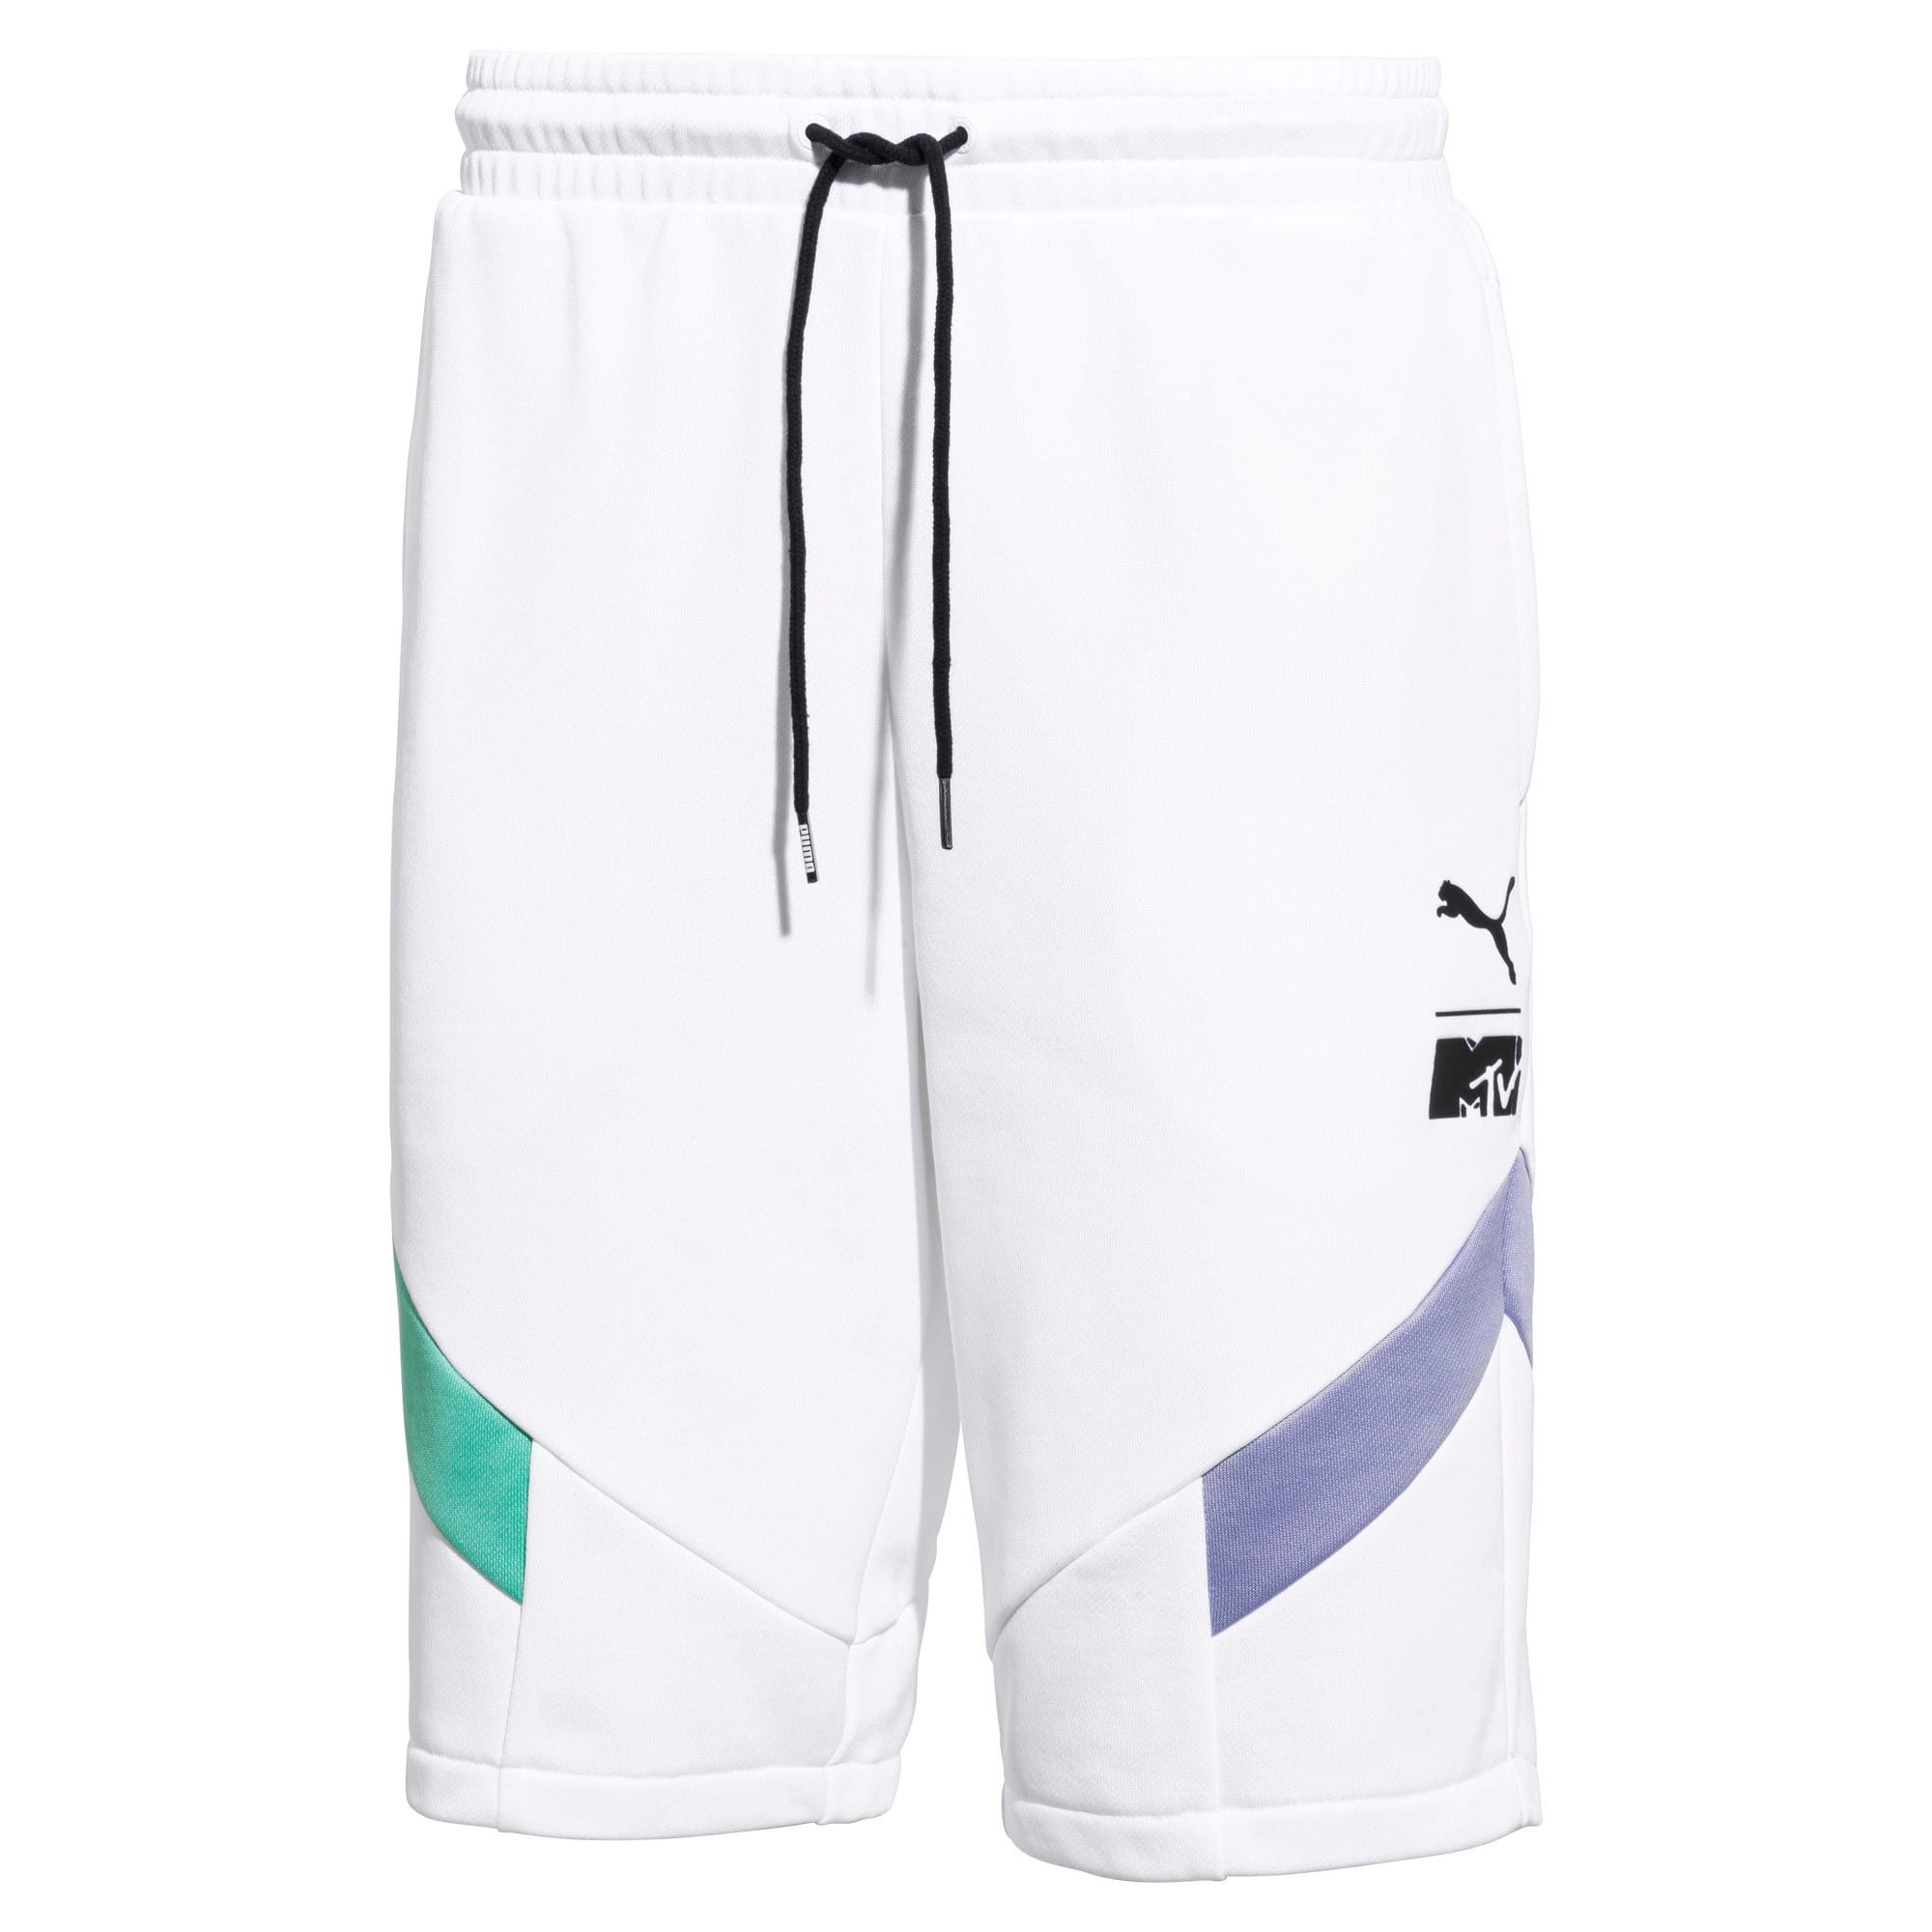 Thumbnail 1 of PUMA x MTV MCS Herren Shorts, Puma White, medium